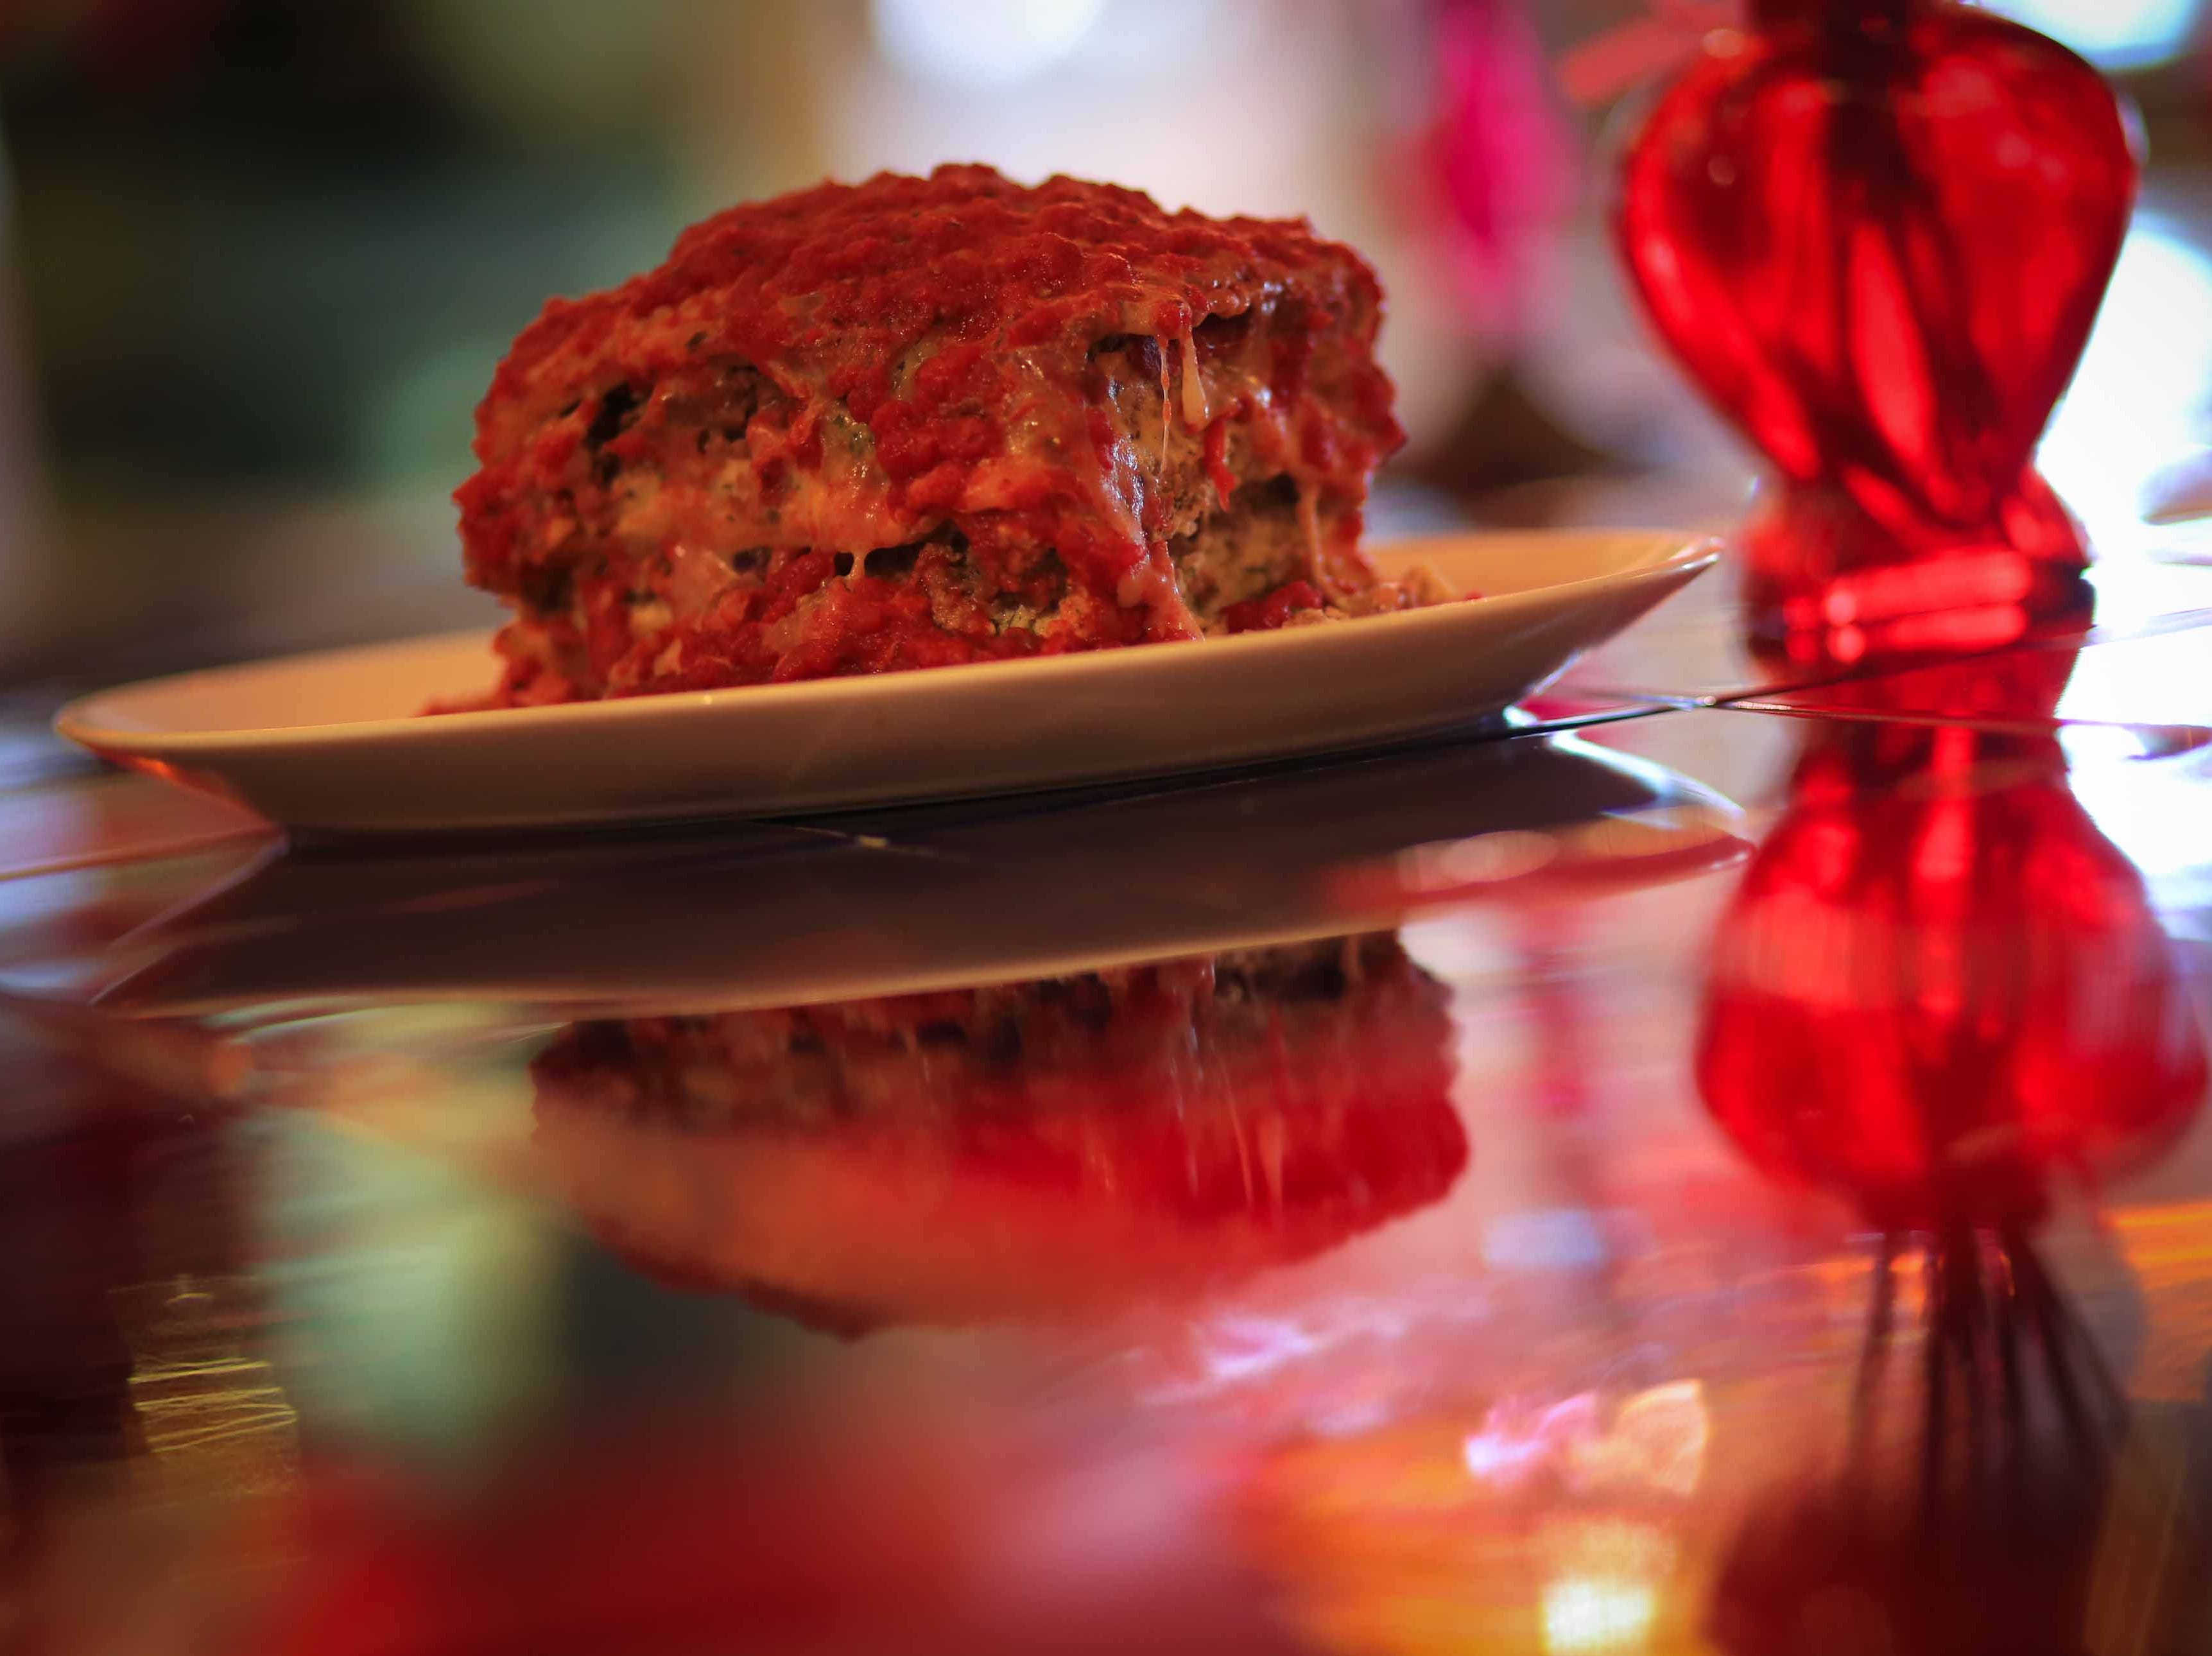 Homemade lasagna piled high is one of Serendipity Restaurant signature dishes on the menu at the Oak Orchard establishment that overlooks Indian River.